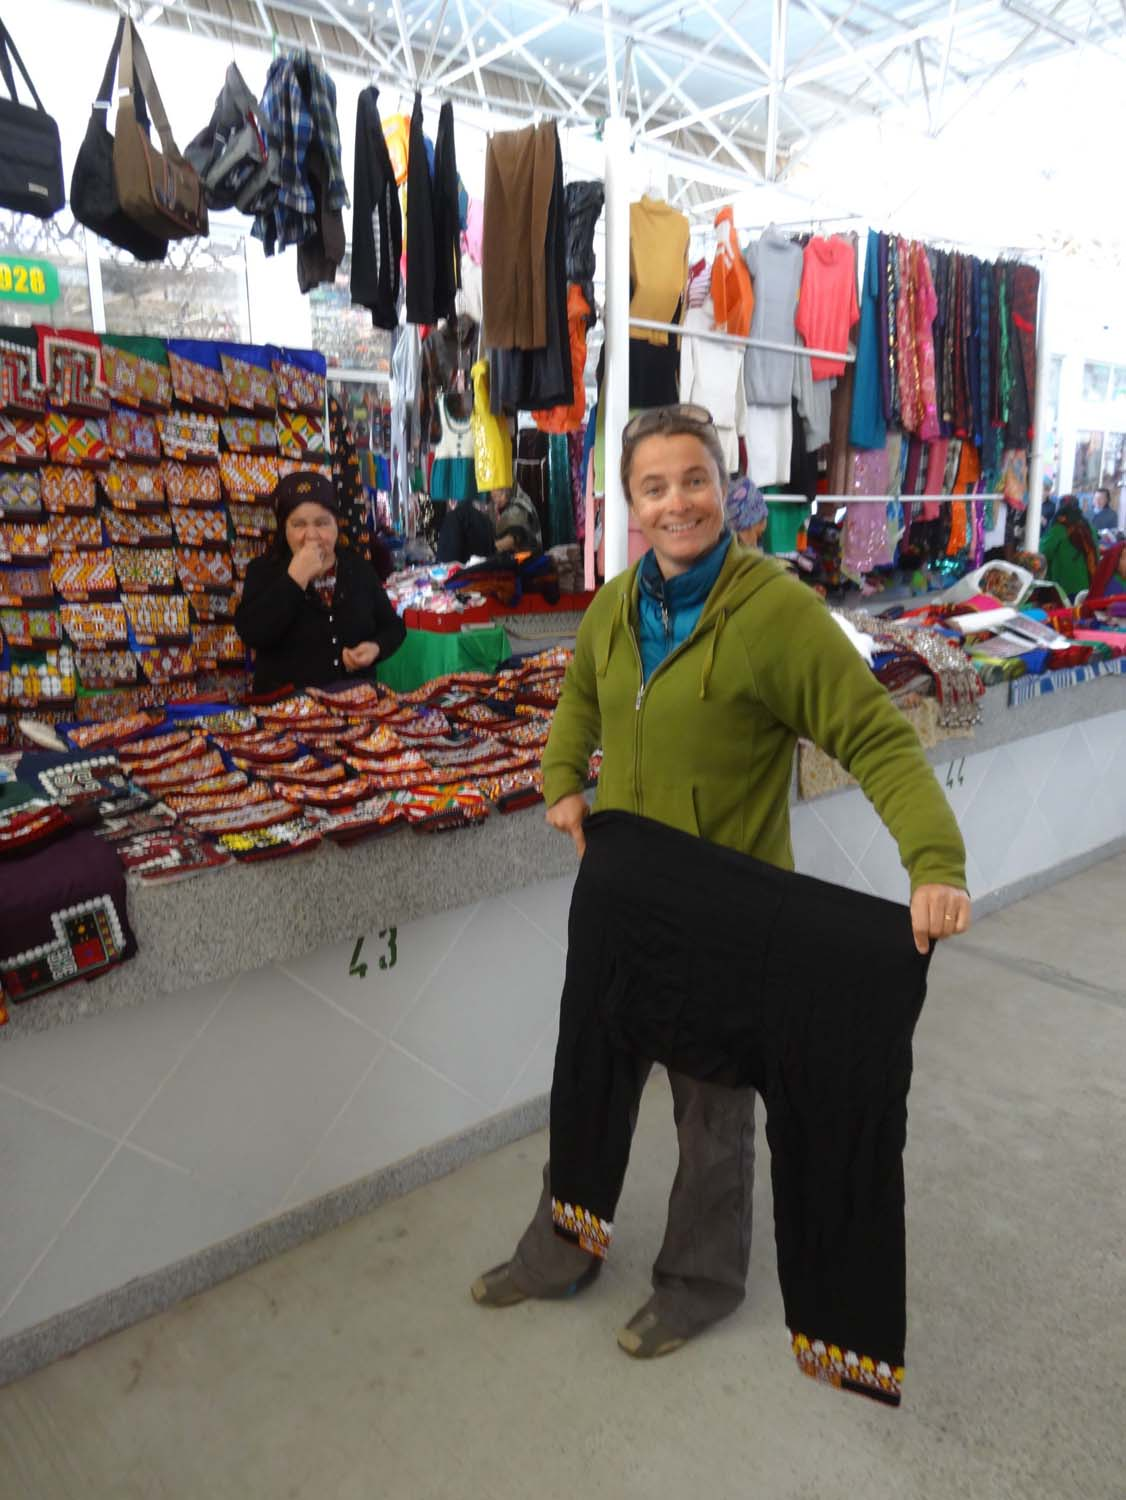 trousers anyone? you can certainly say this is a one-size fits all!